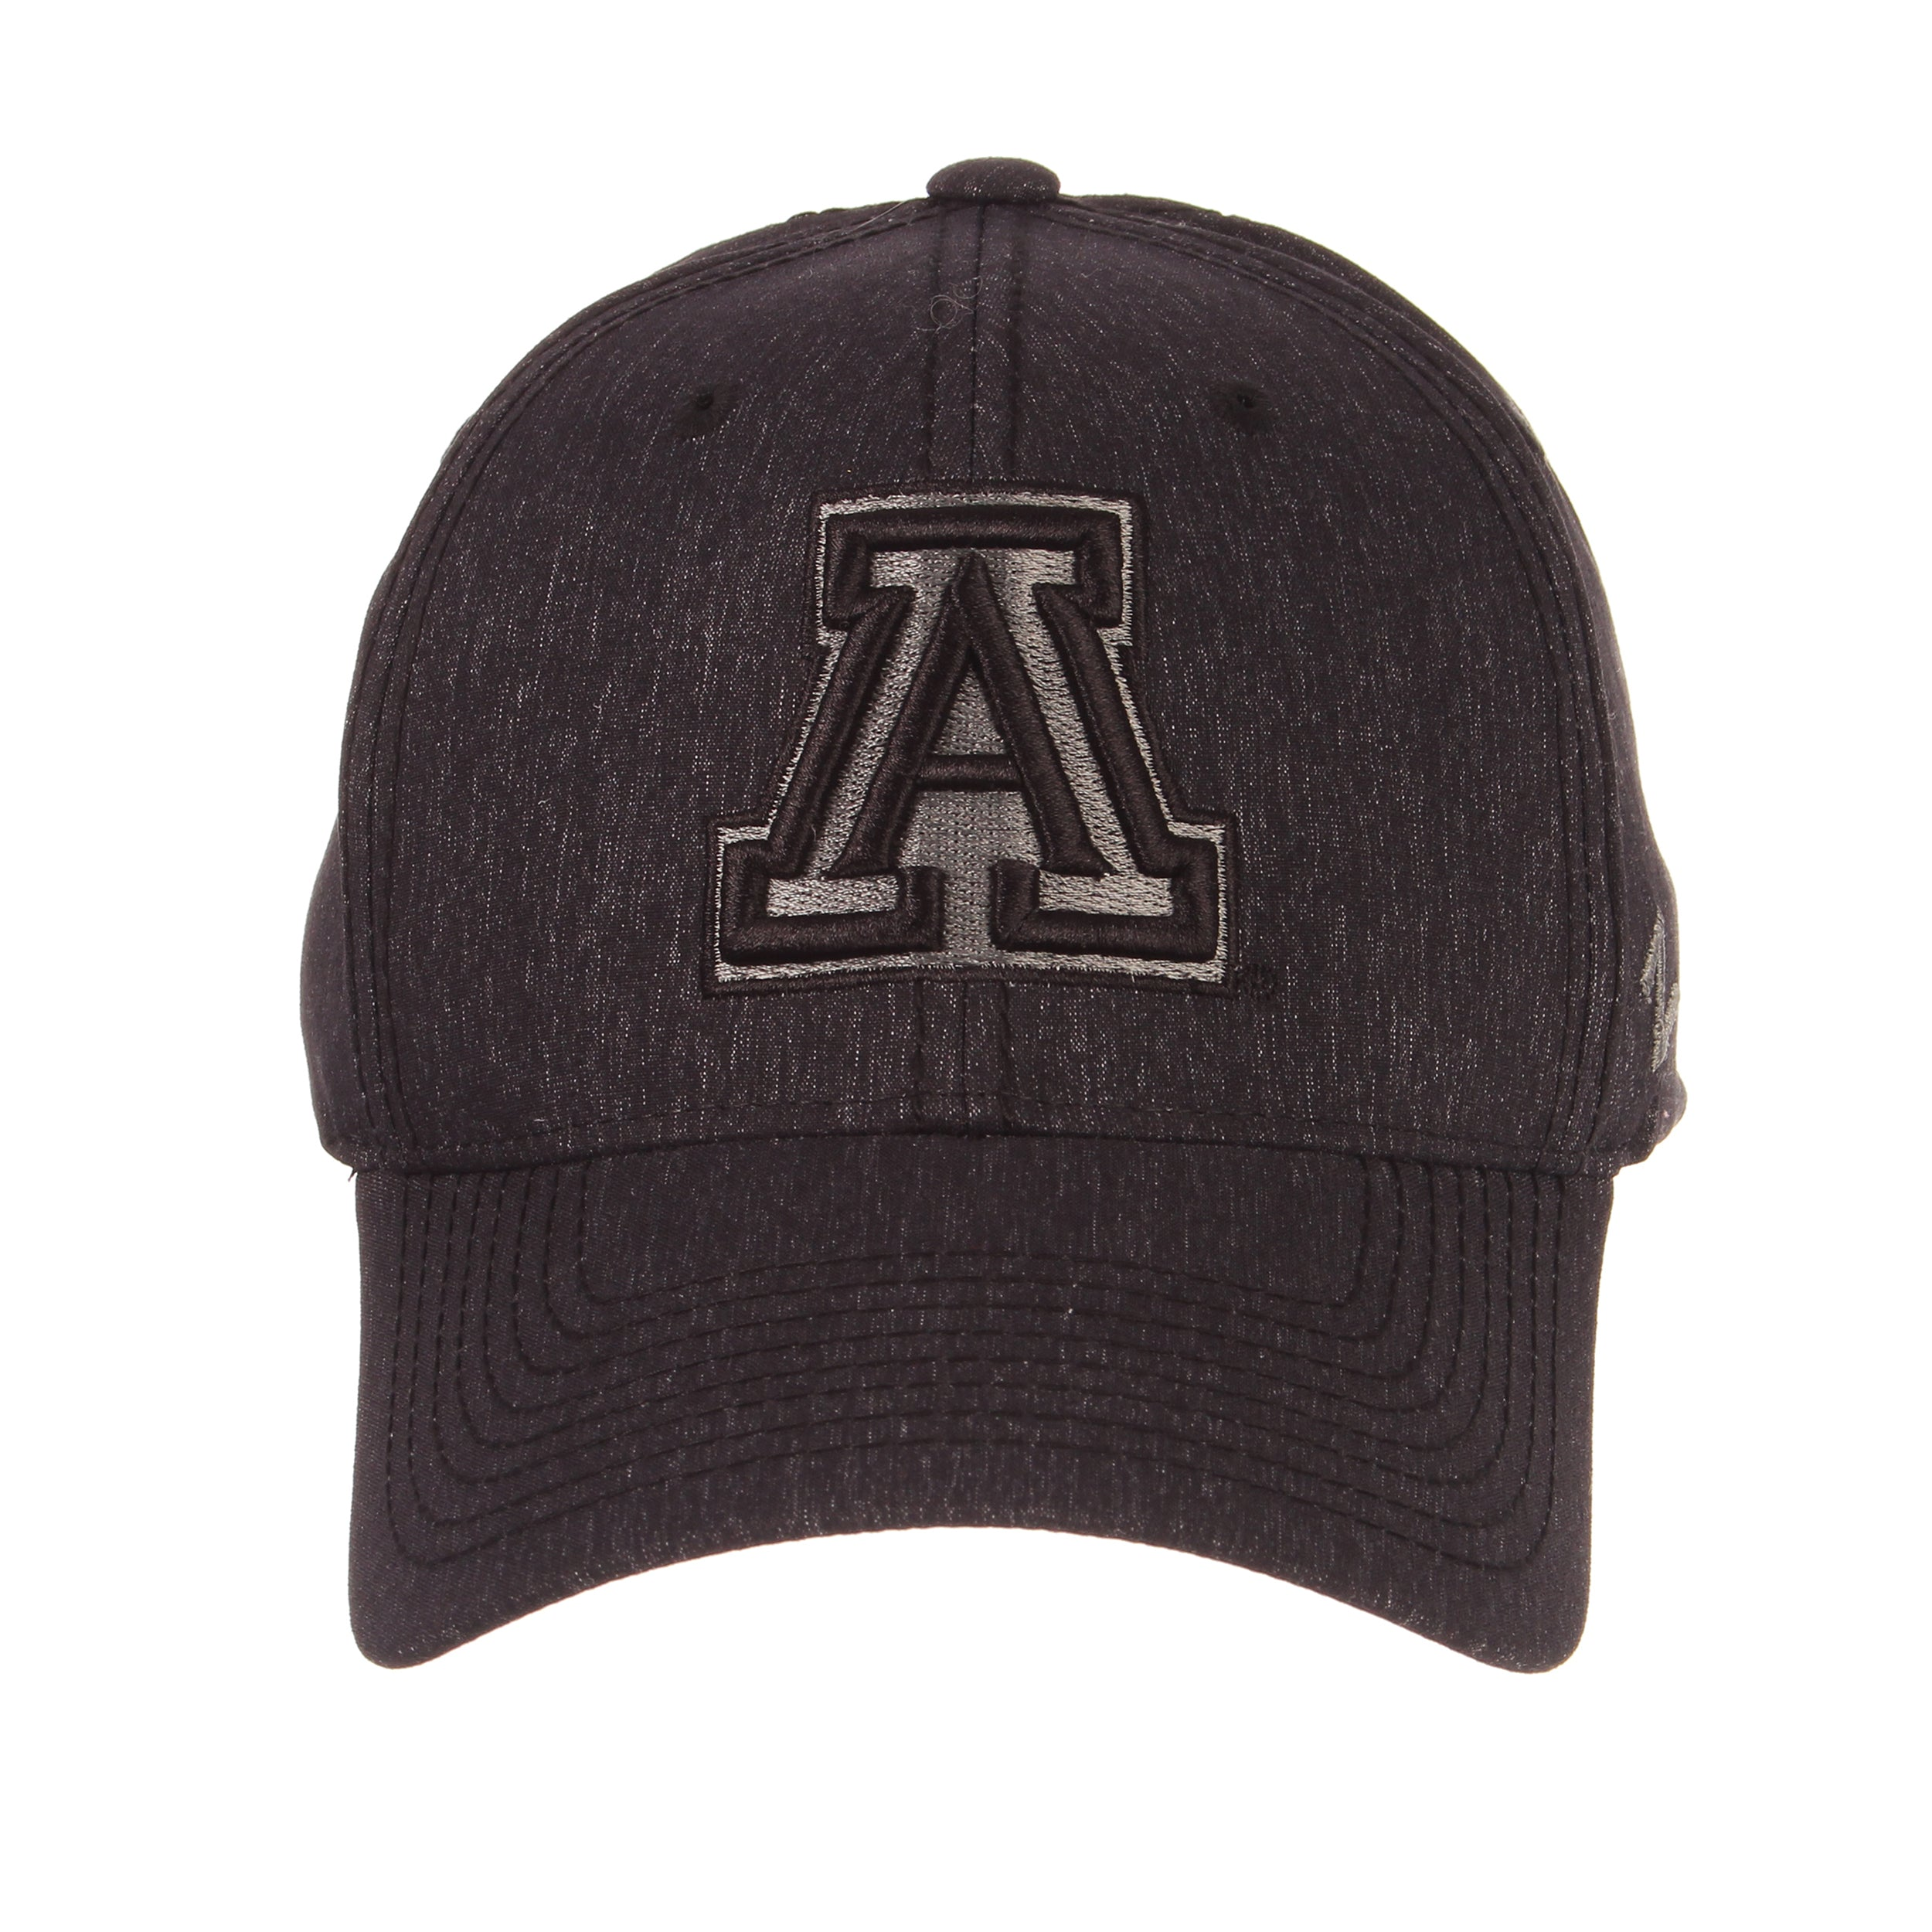 Arizona Outlier - Black